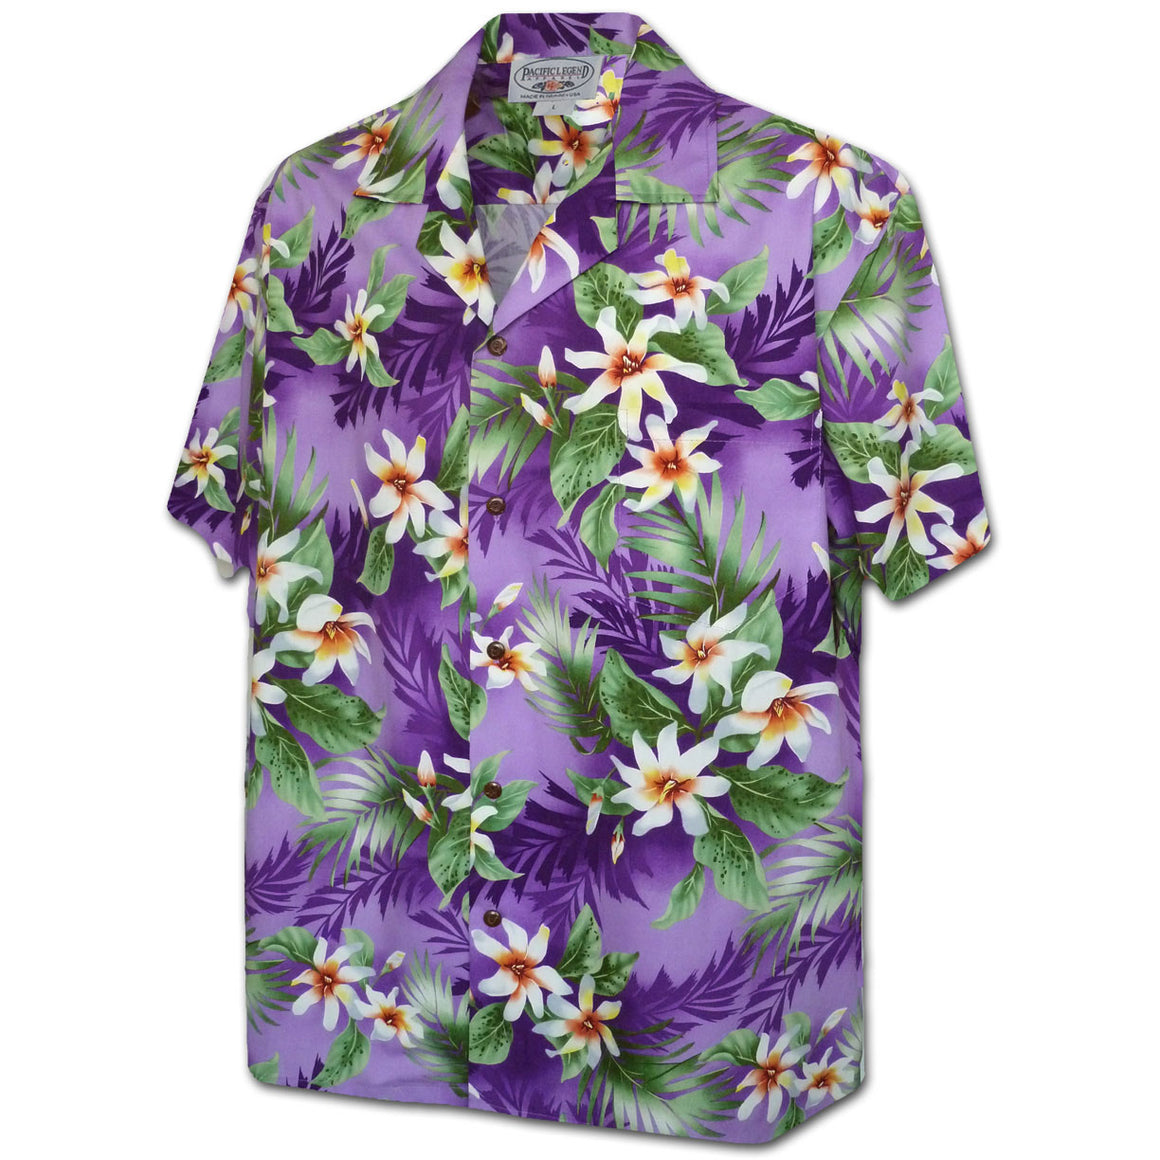 26f9b413243 Hawaiian Shirts   Hawaiian Fashion - AlohaFunWear.com